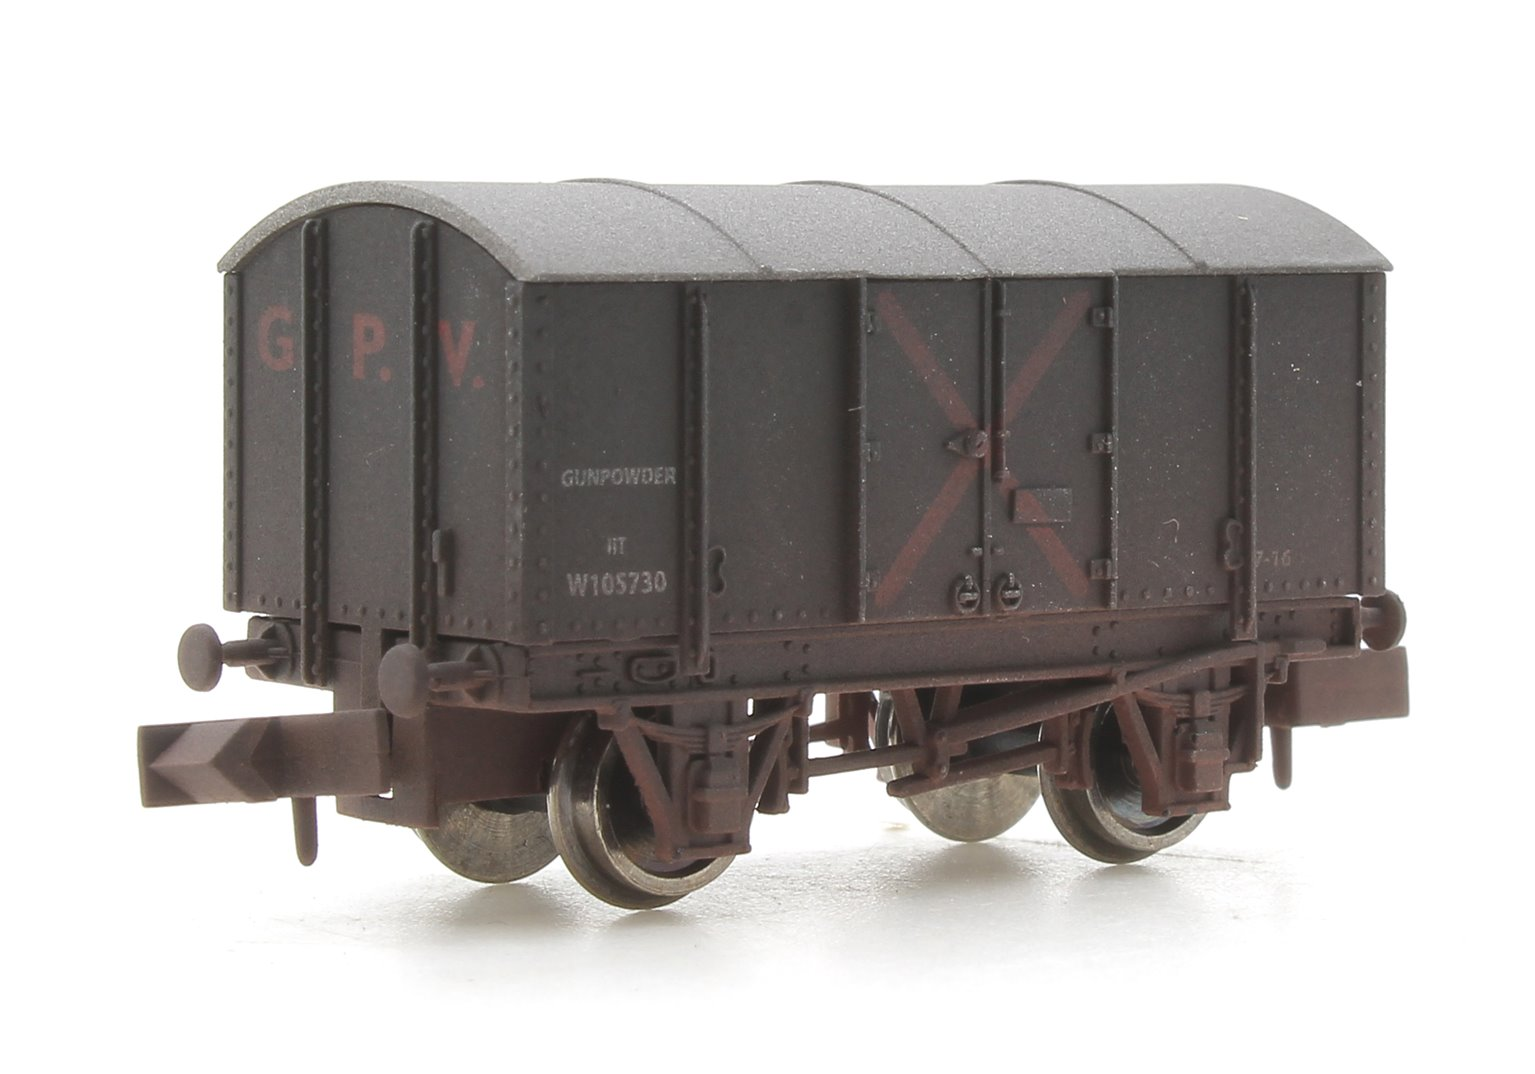 Gunpowder Van GWR W105730 Weathered